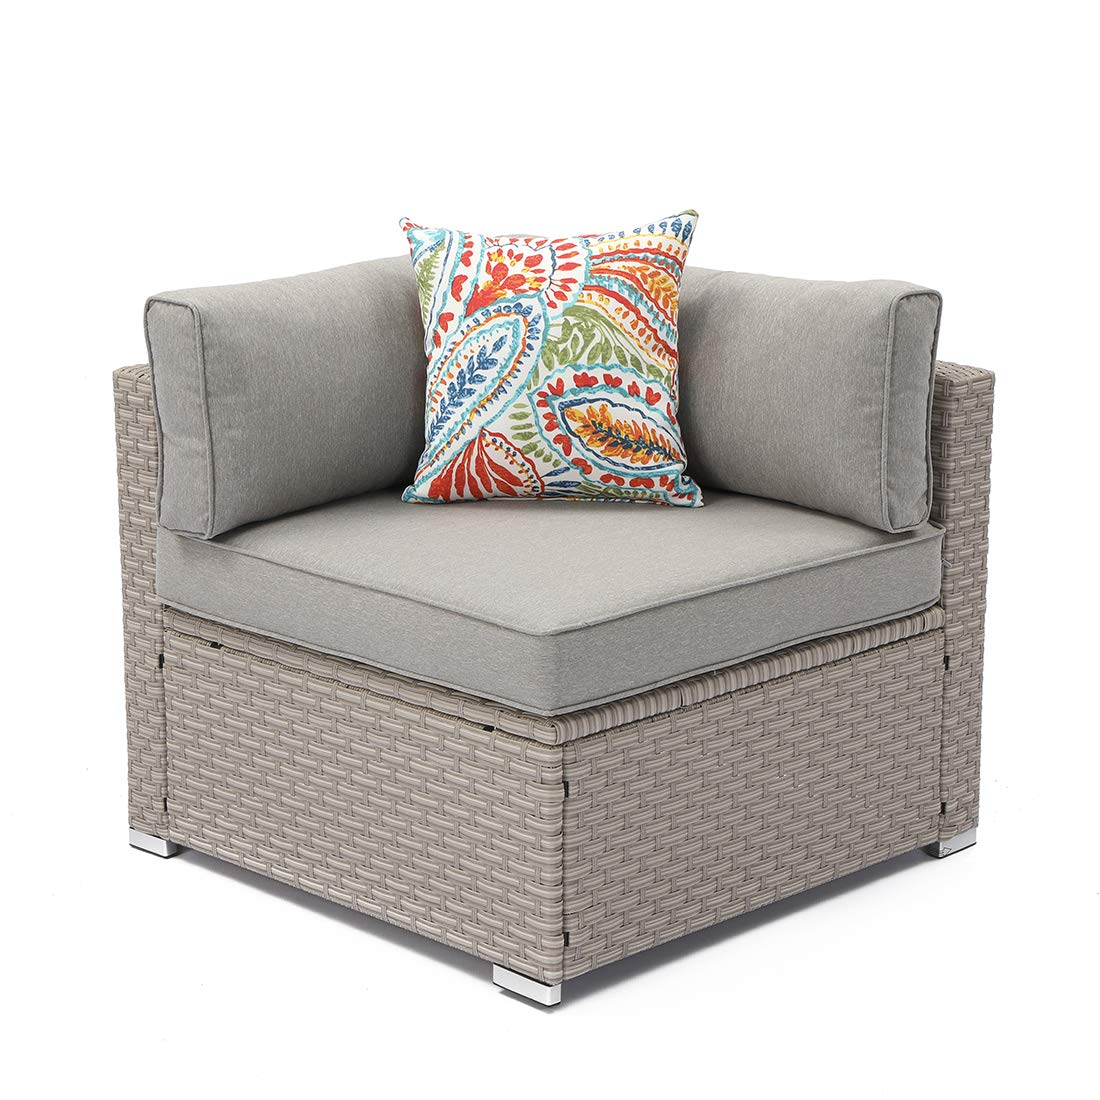 COSIEST Outdoor Furniture Add-on Left Corner Chair for Expanding Wicker Sectional Sofa Set w Warm Gray Thick Cushions Backyard Pool 1 Floral Fantasy Pillow for Garden